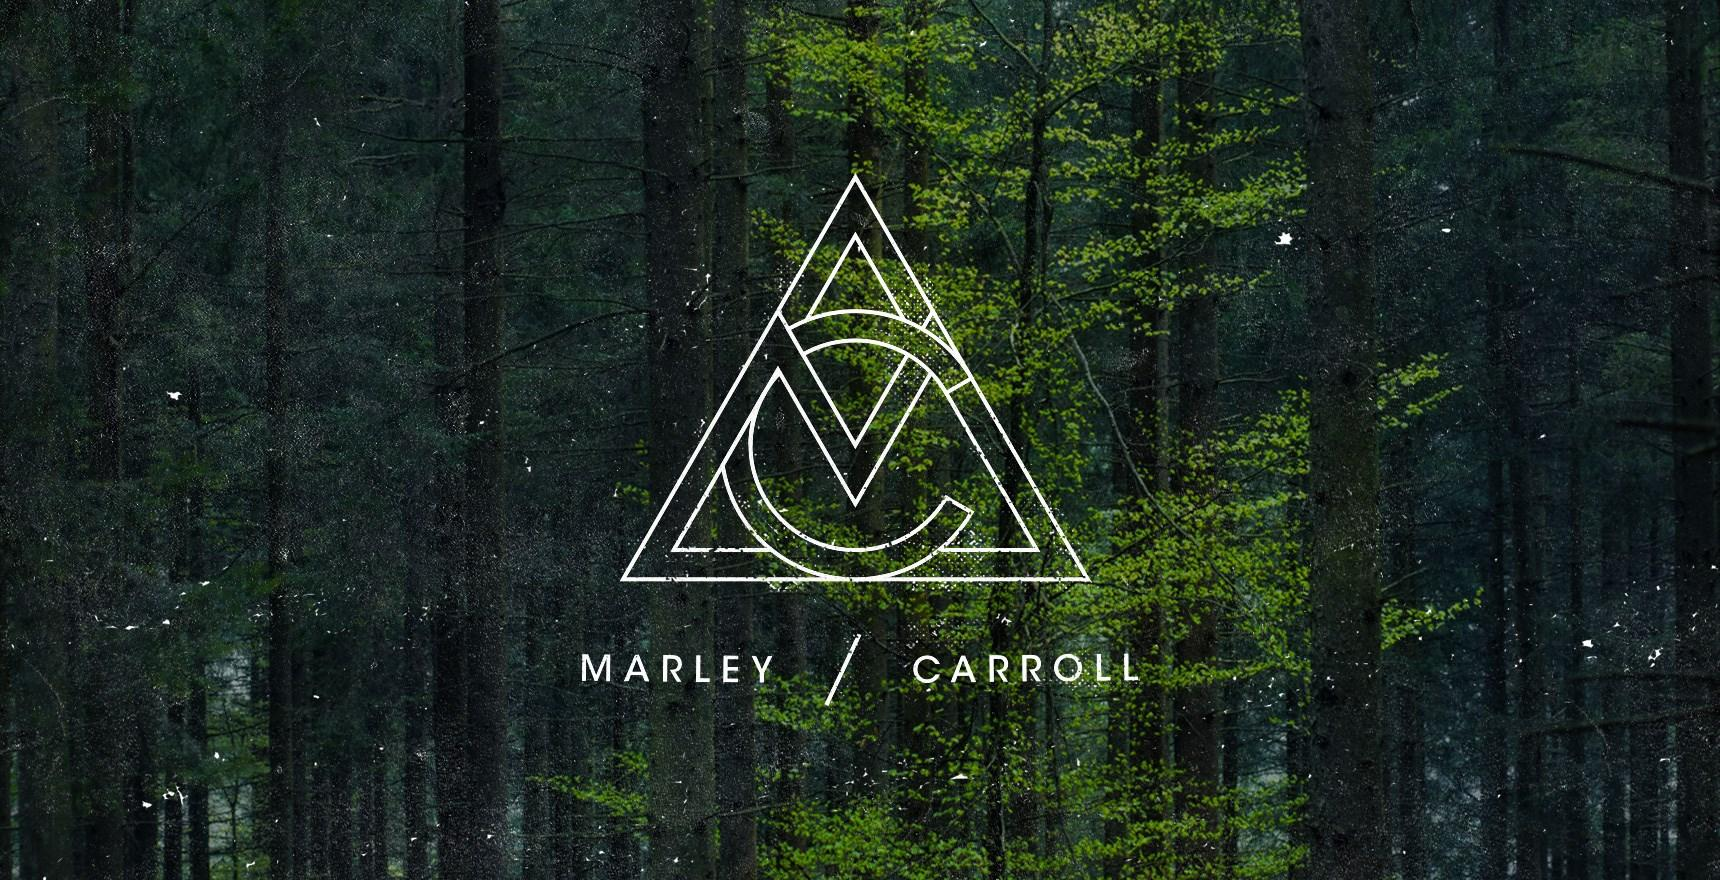 Lose Yourself to Dance - Free Party w/ DJ Marley Carroll - [dance]